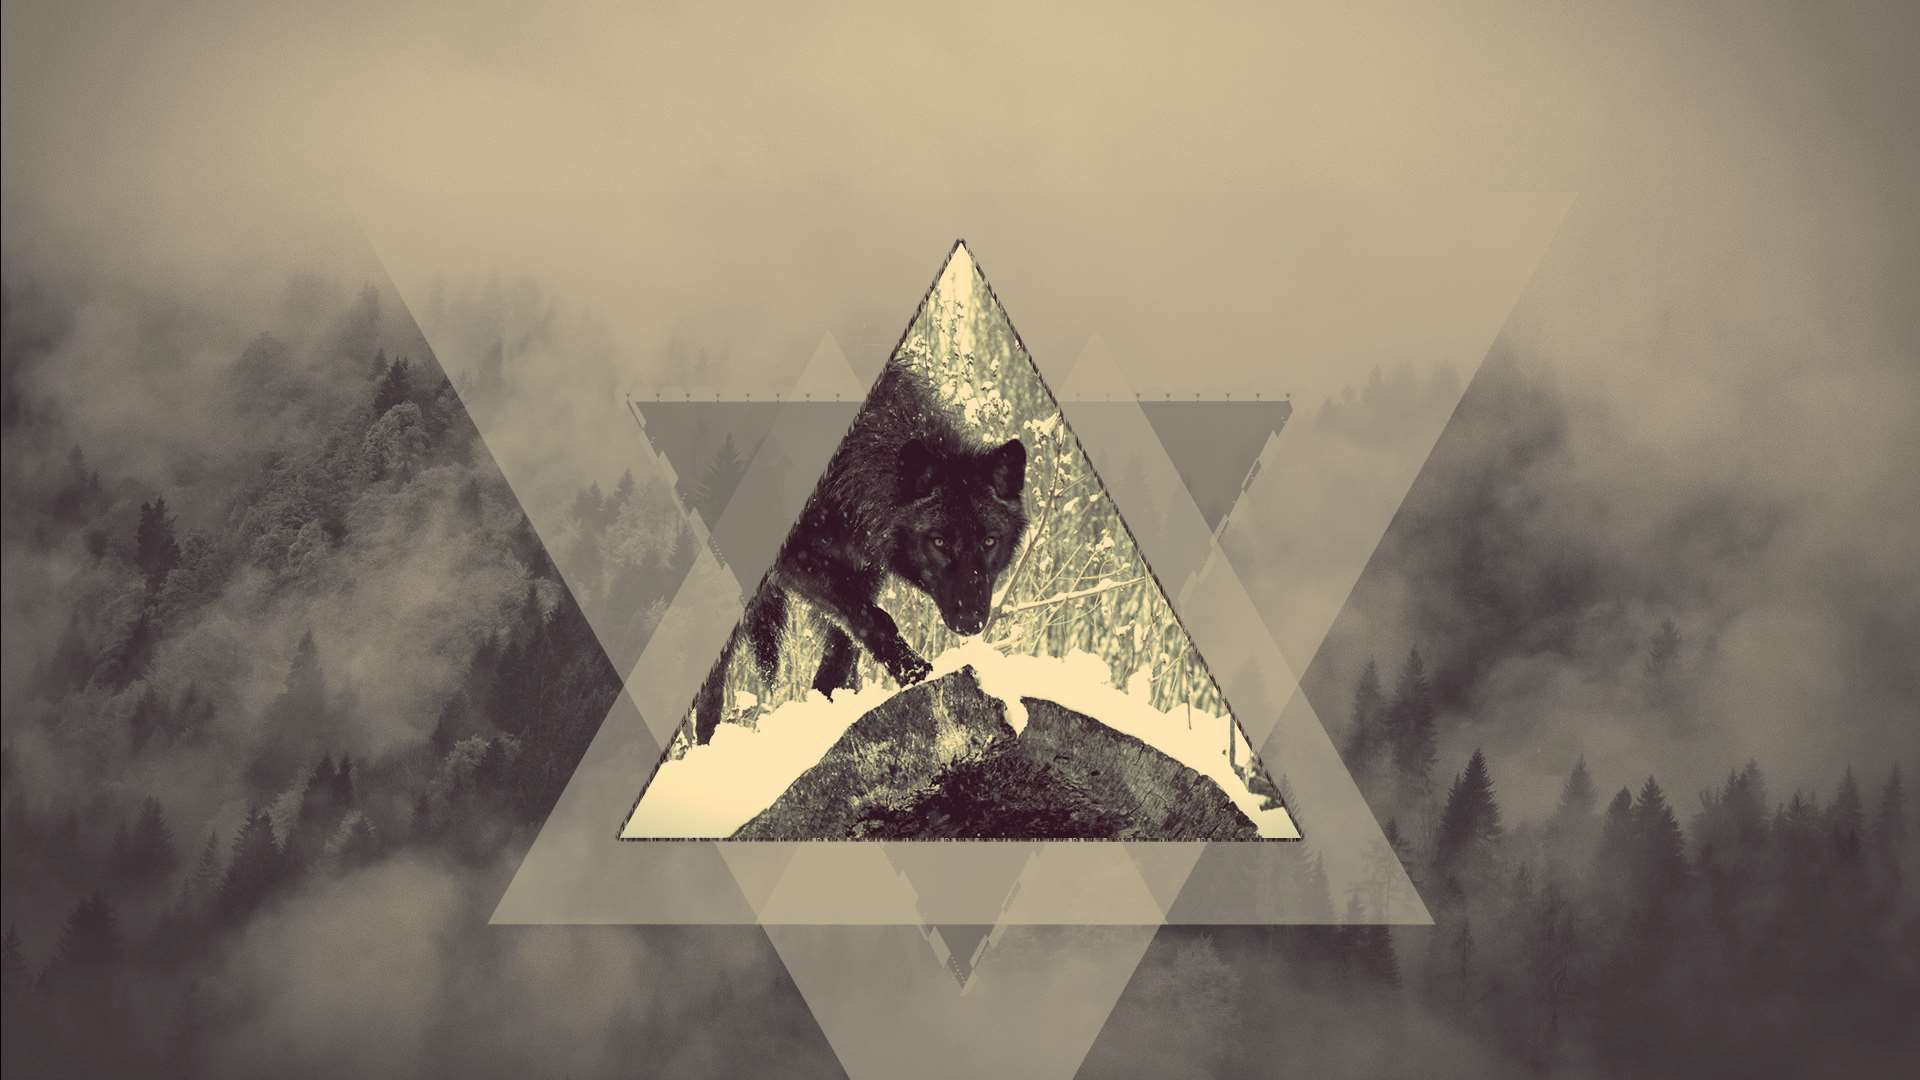 1920x1080 adobe photoshop #cold #fog #forest #pines #predator #triangle ...